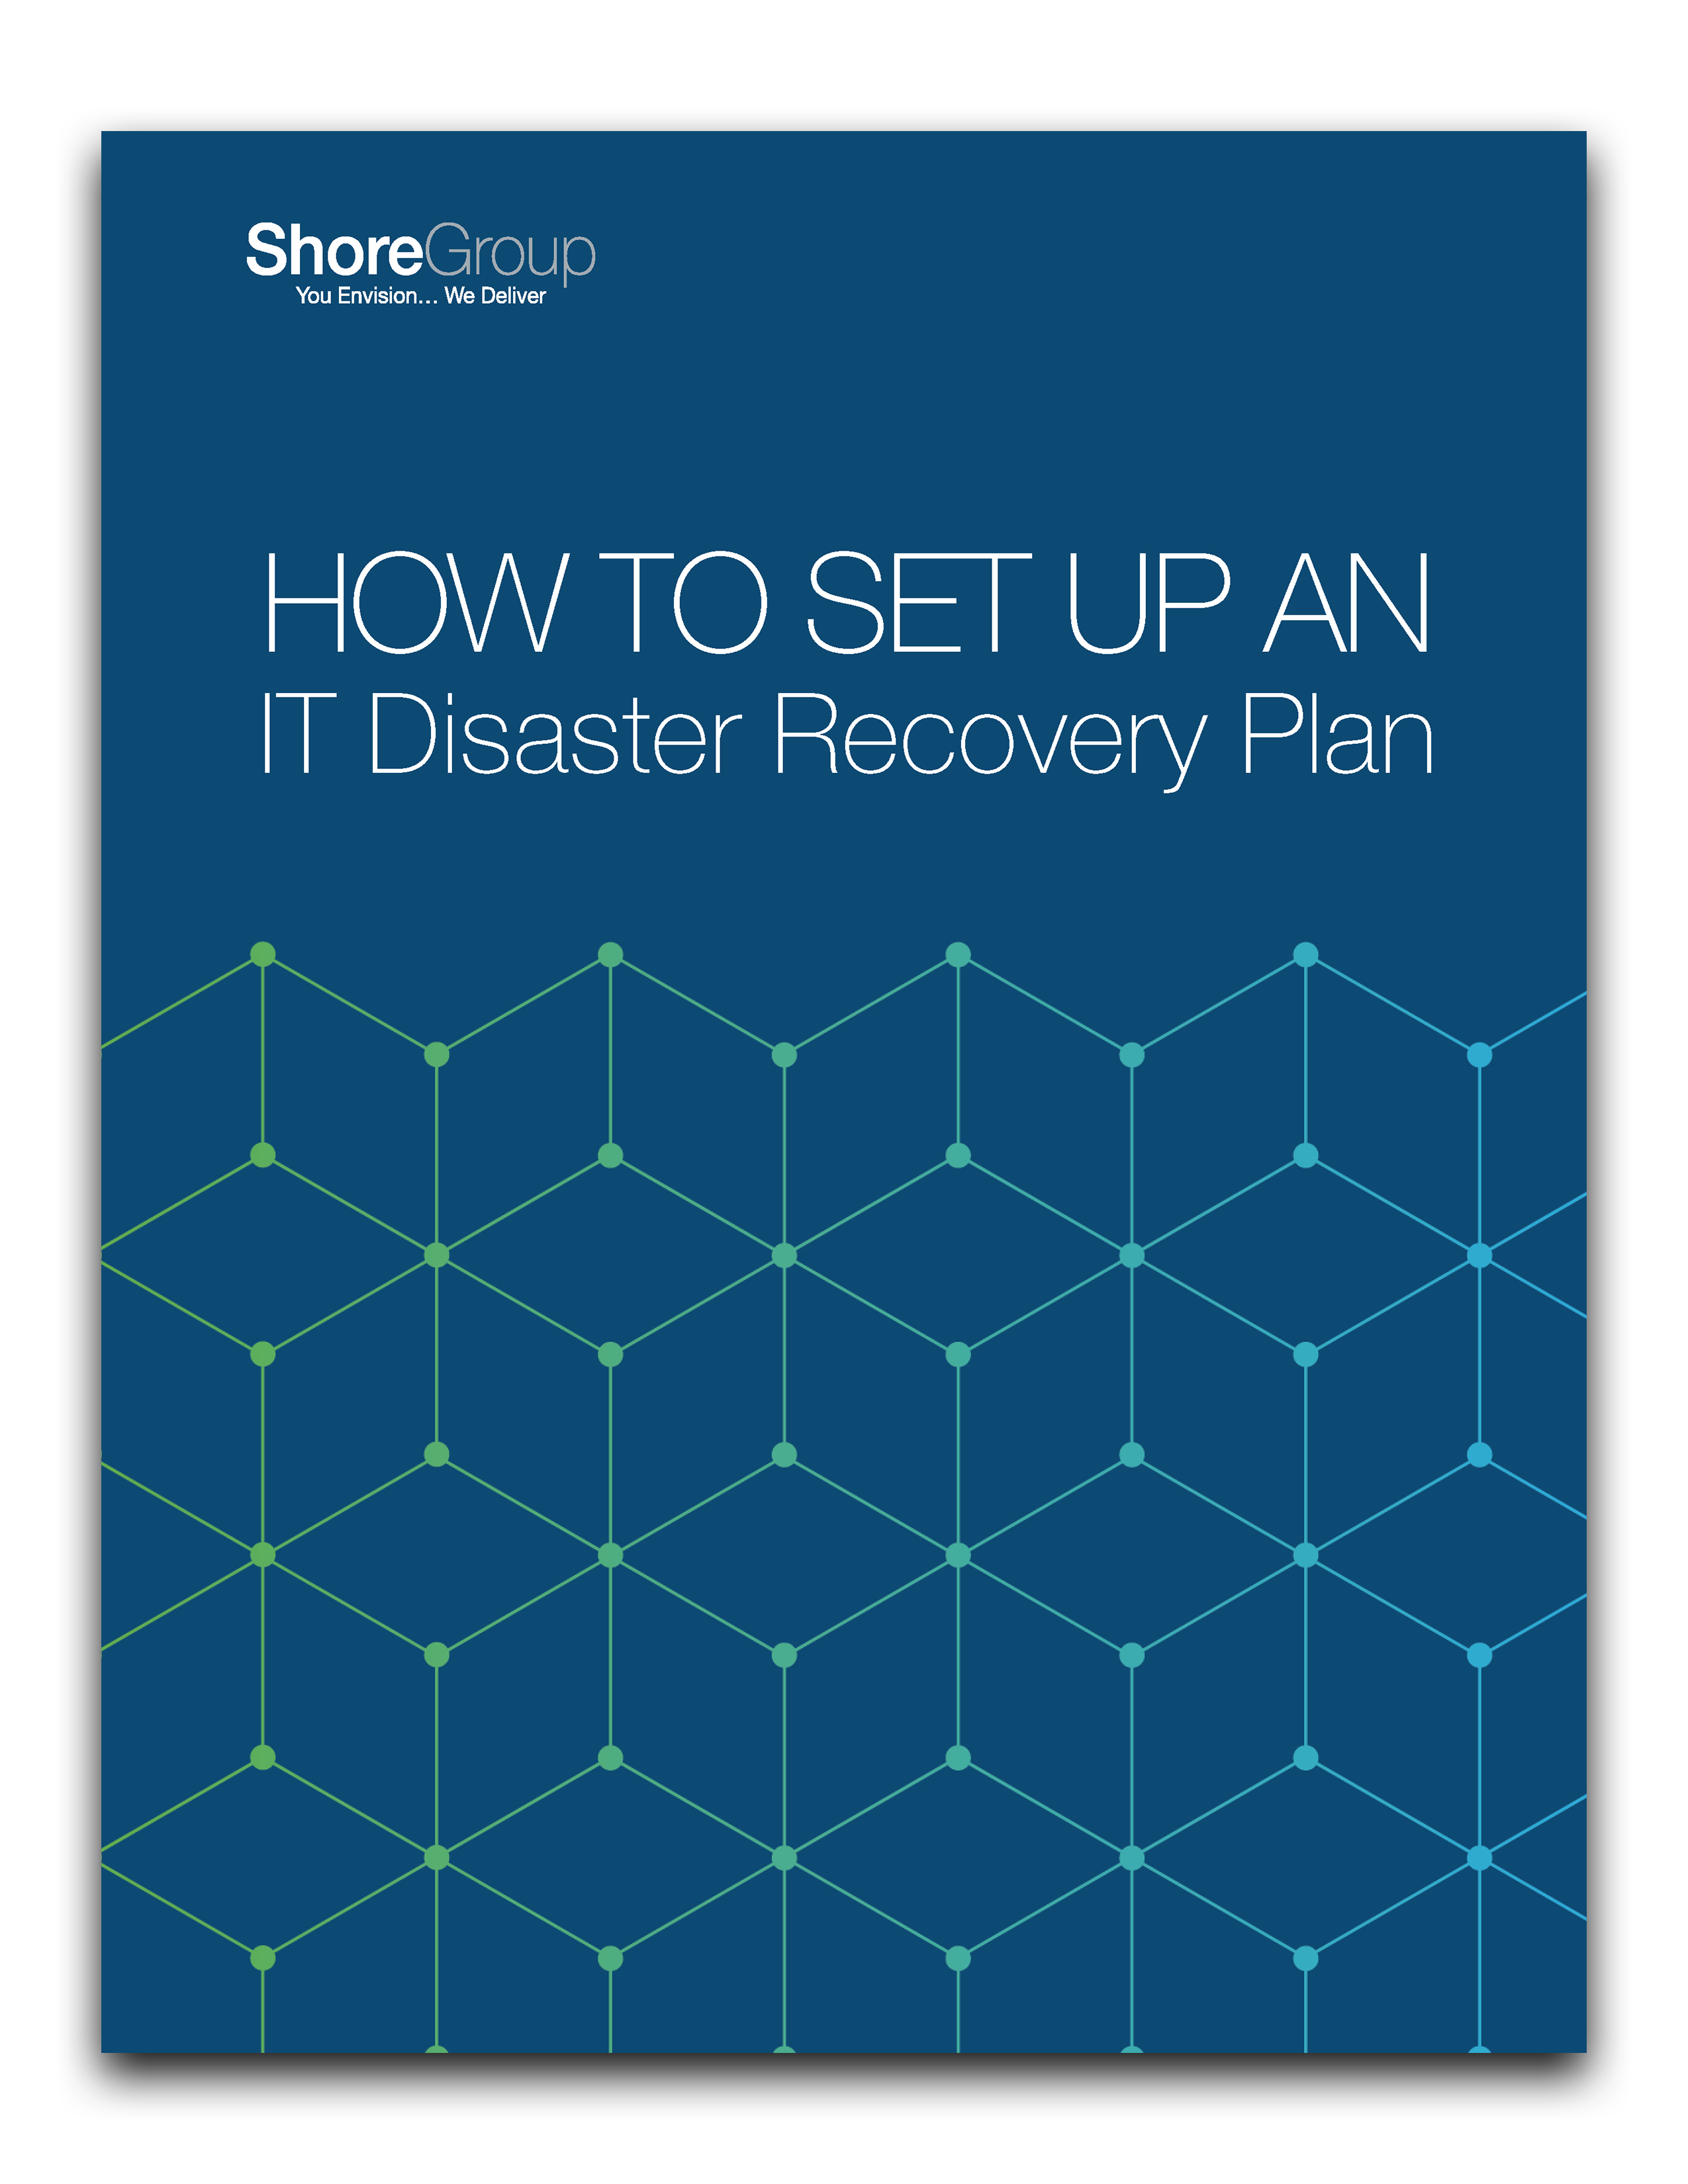 How_to_Set_Up_an_IT_Disaster_Recovery_Plan_Whitepaper_3D_Cover.png